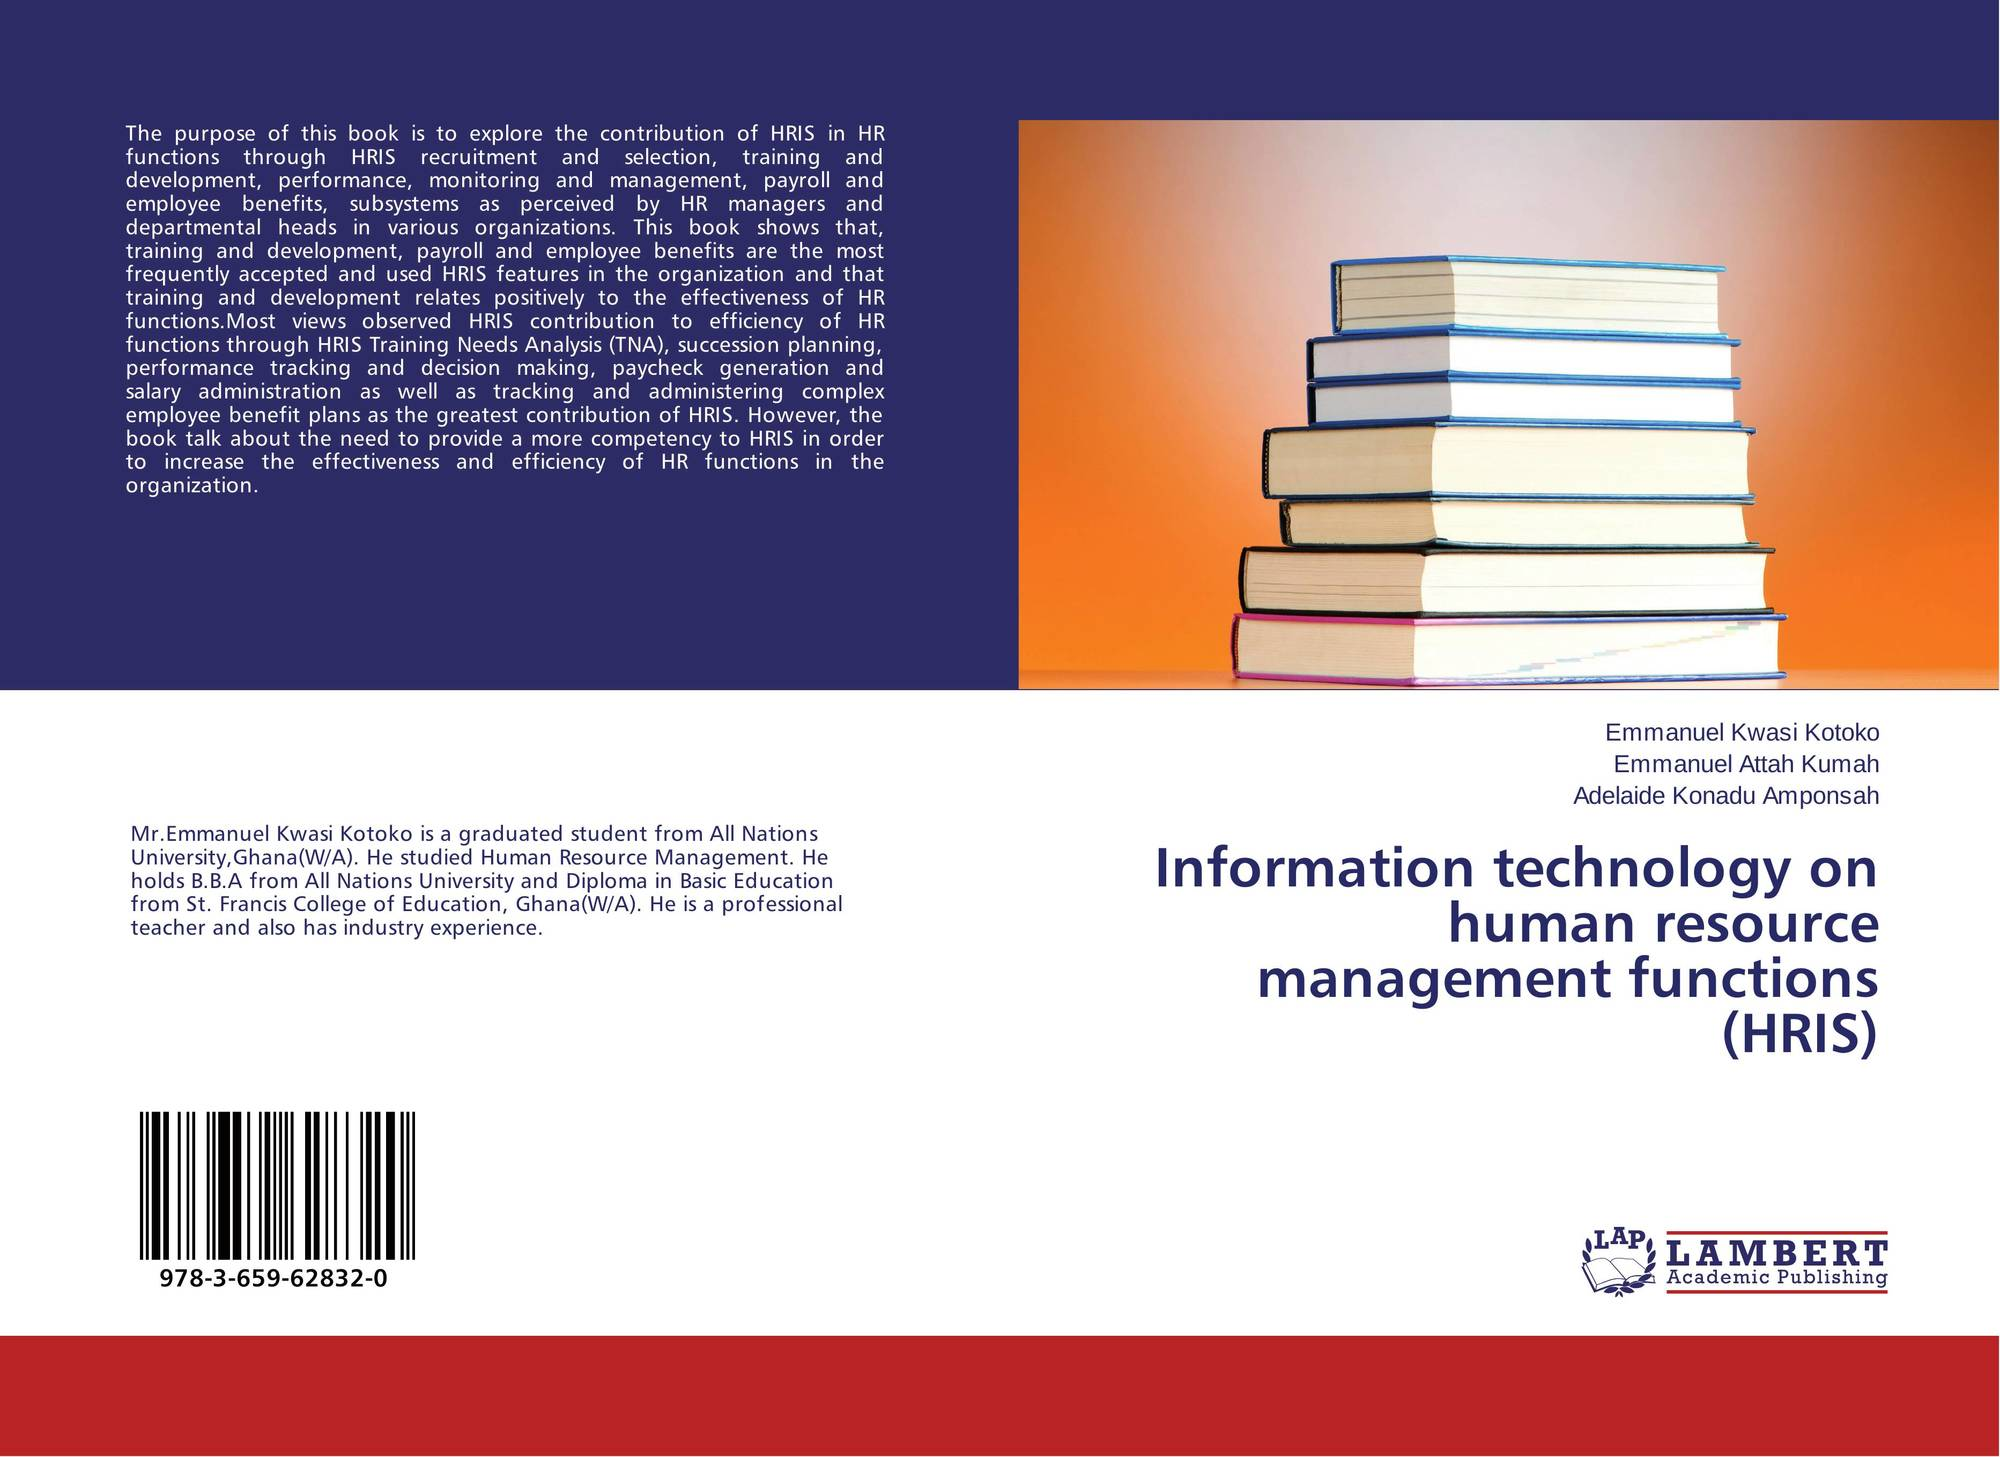 Information Technology Management: Information Technology On Human Resource Management